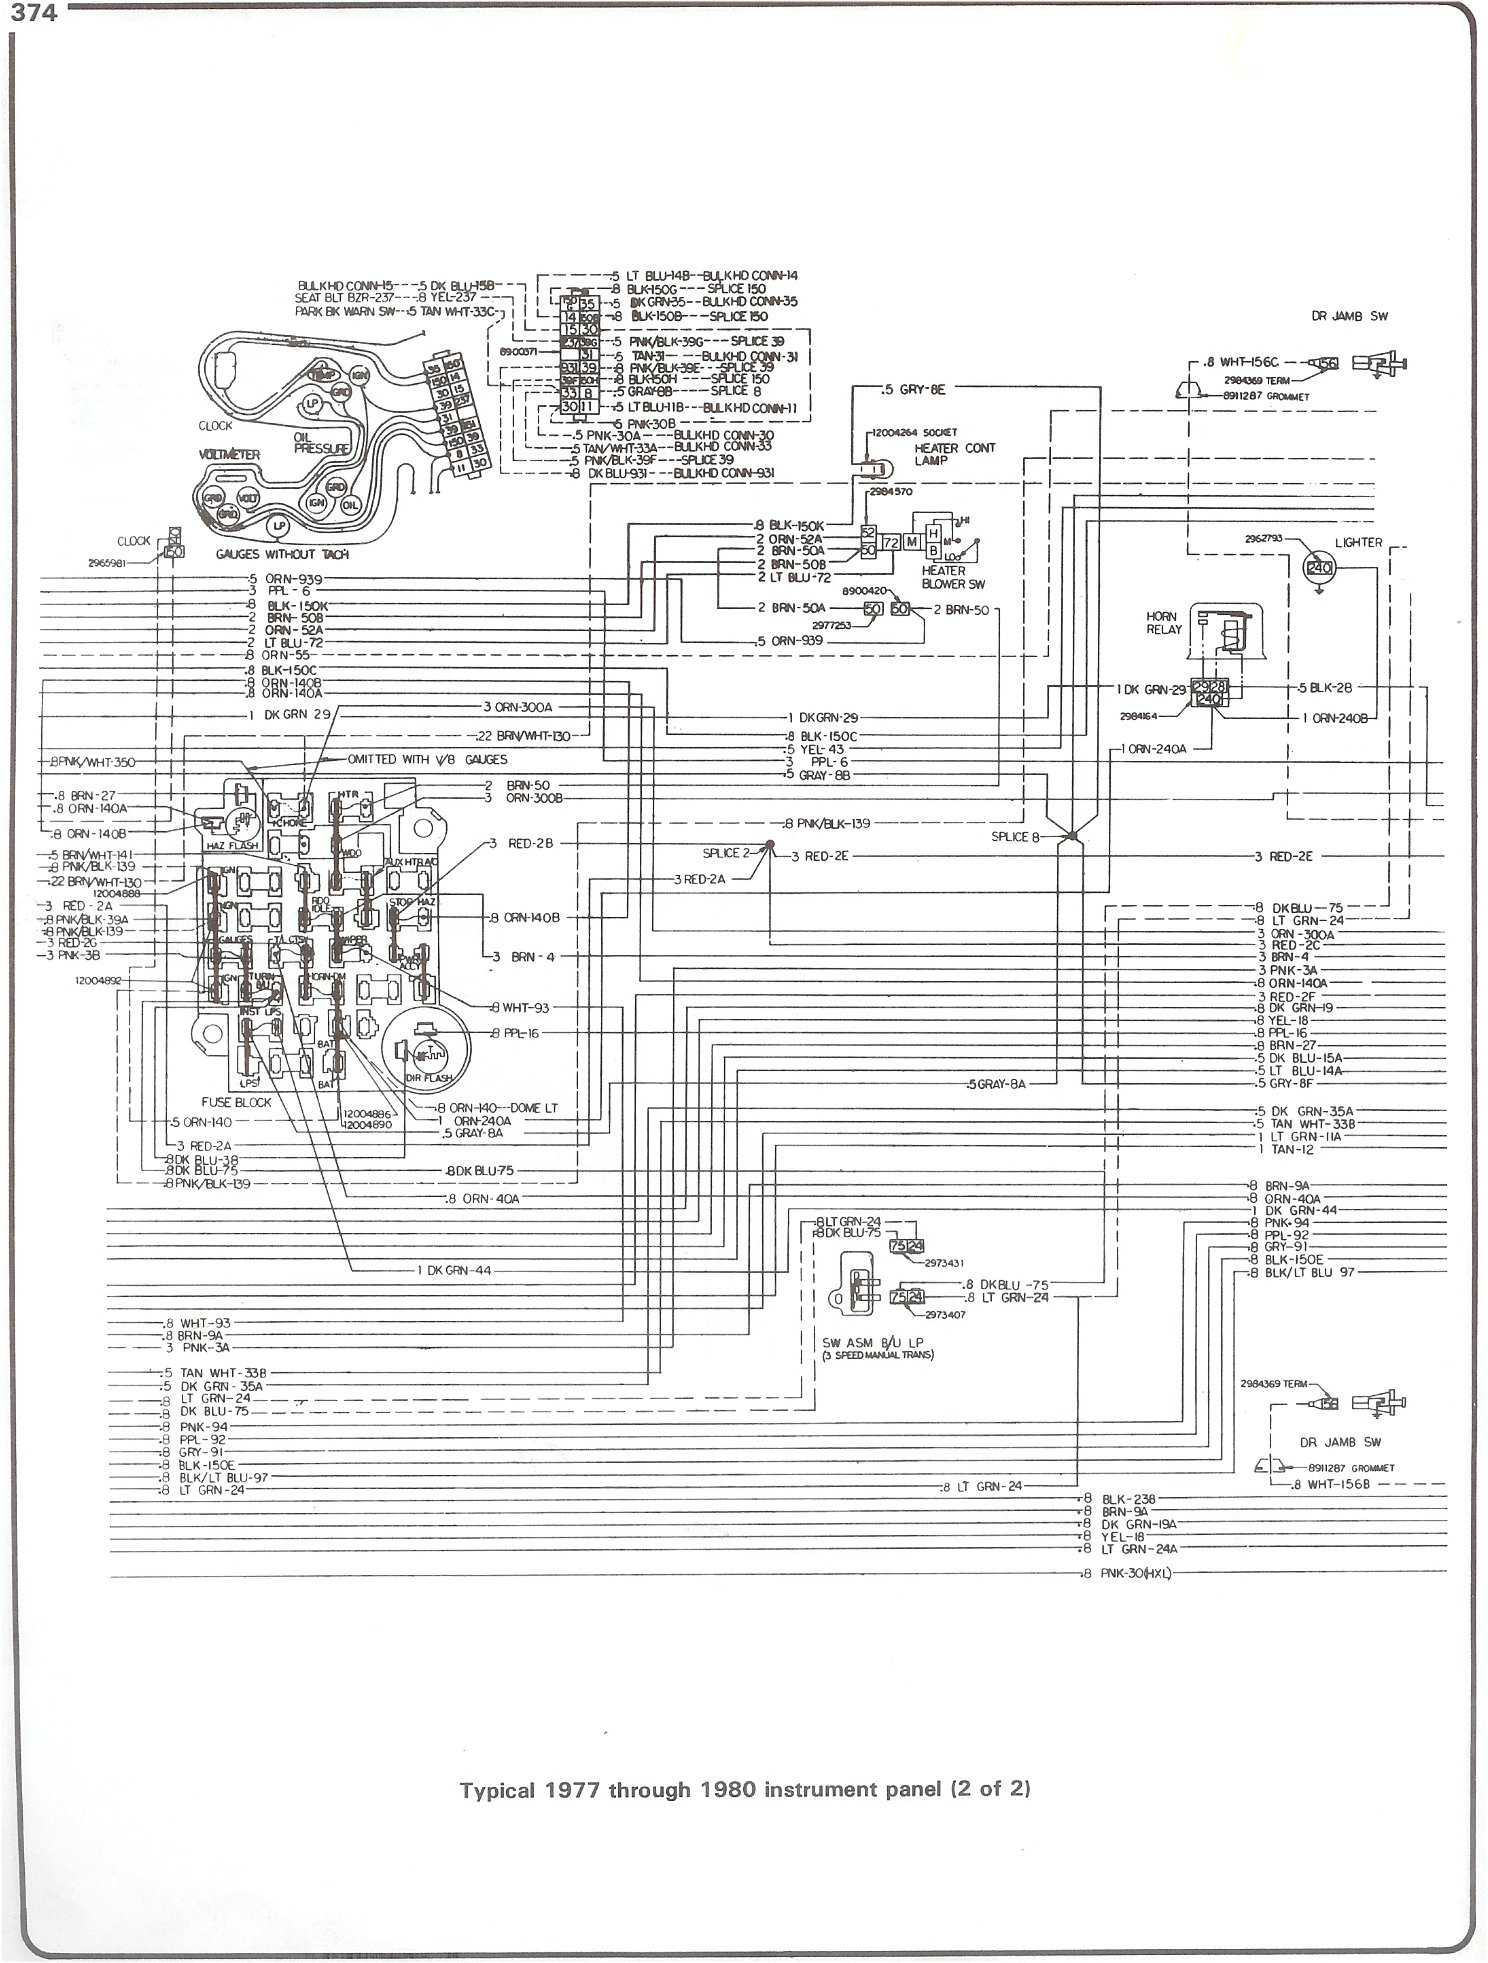 Plete 7387 Wiring Diagrams. 7780 Intrument Panel Page 2. Chevrolet. 1978 Chevy Scottsdale Wiring Diagram At Scoala.co